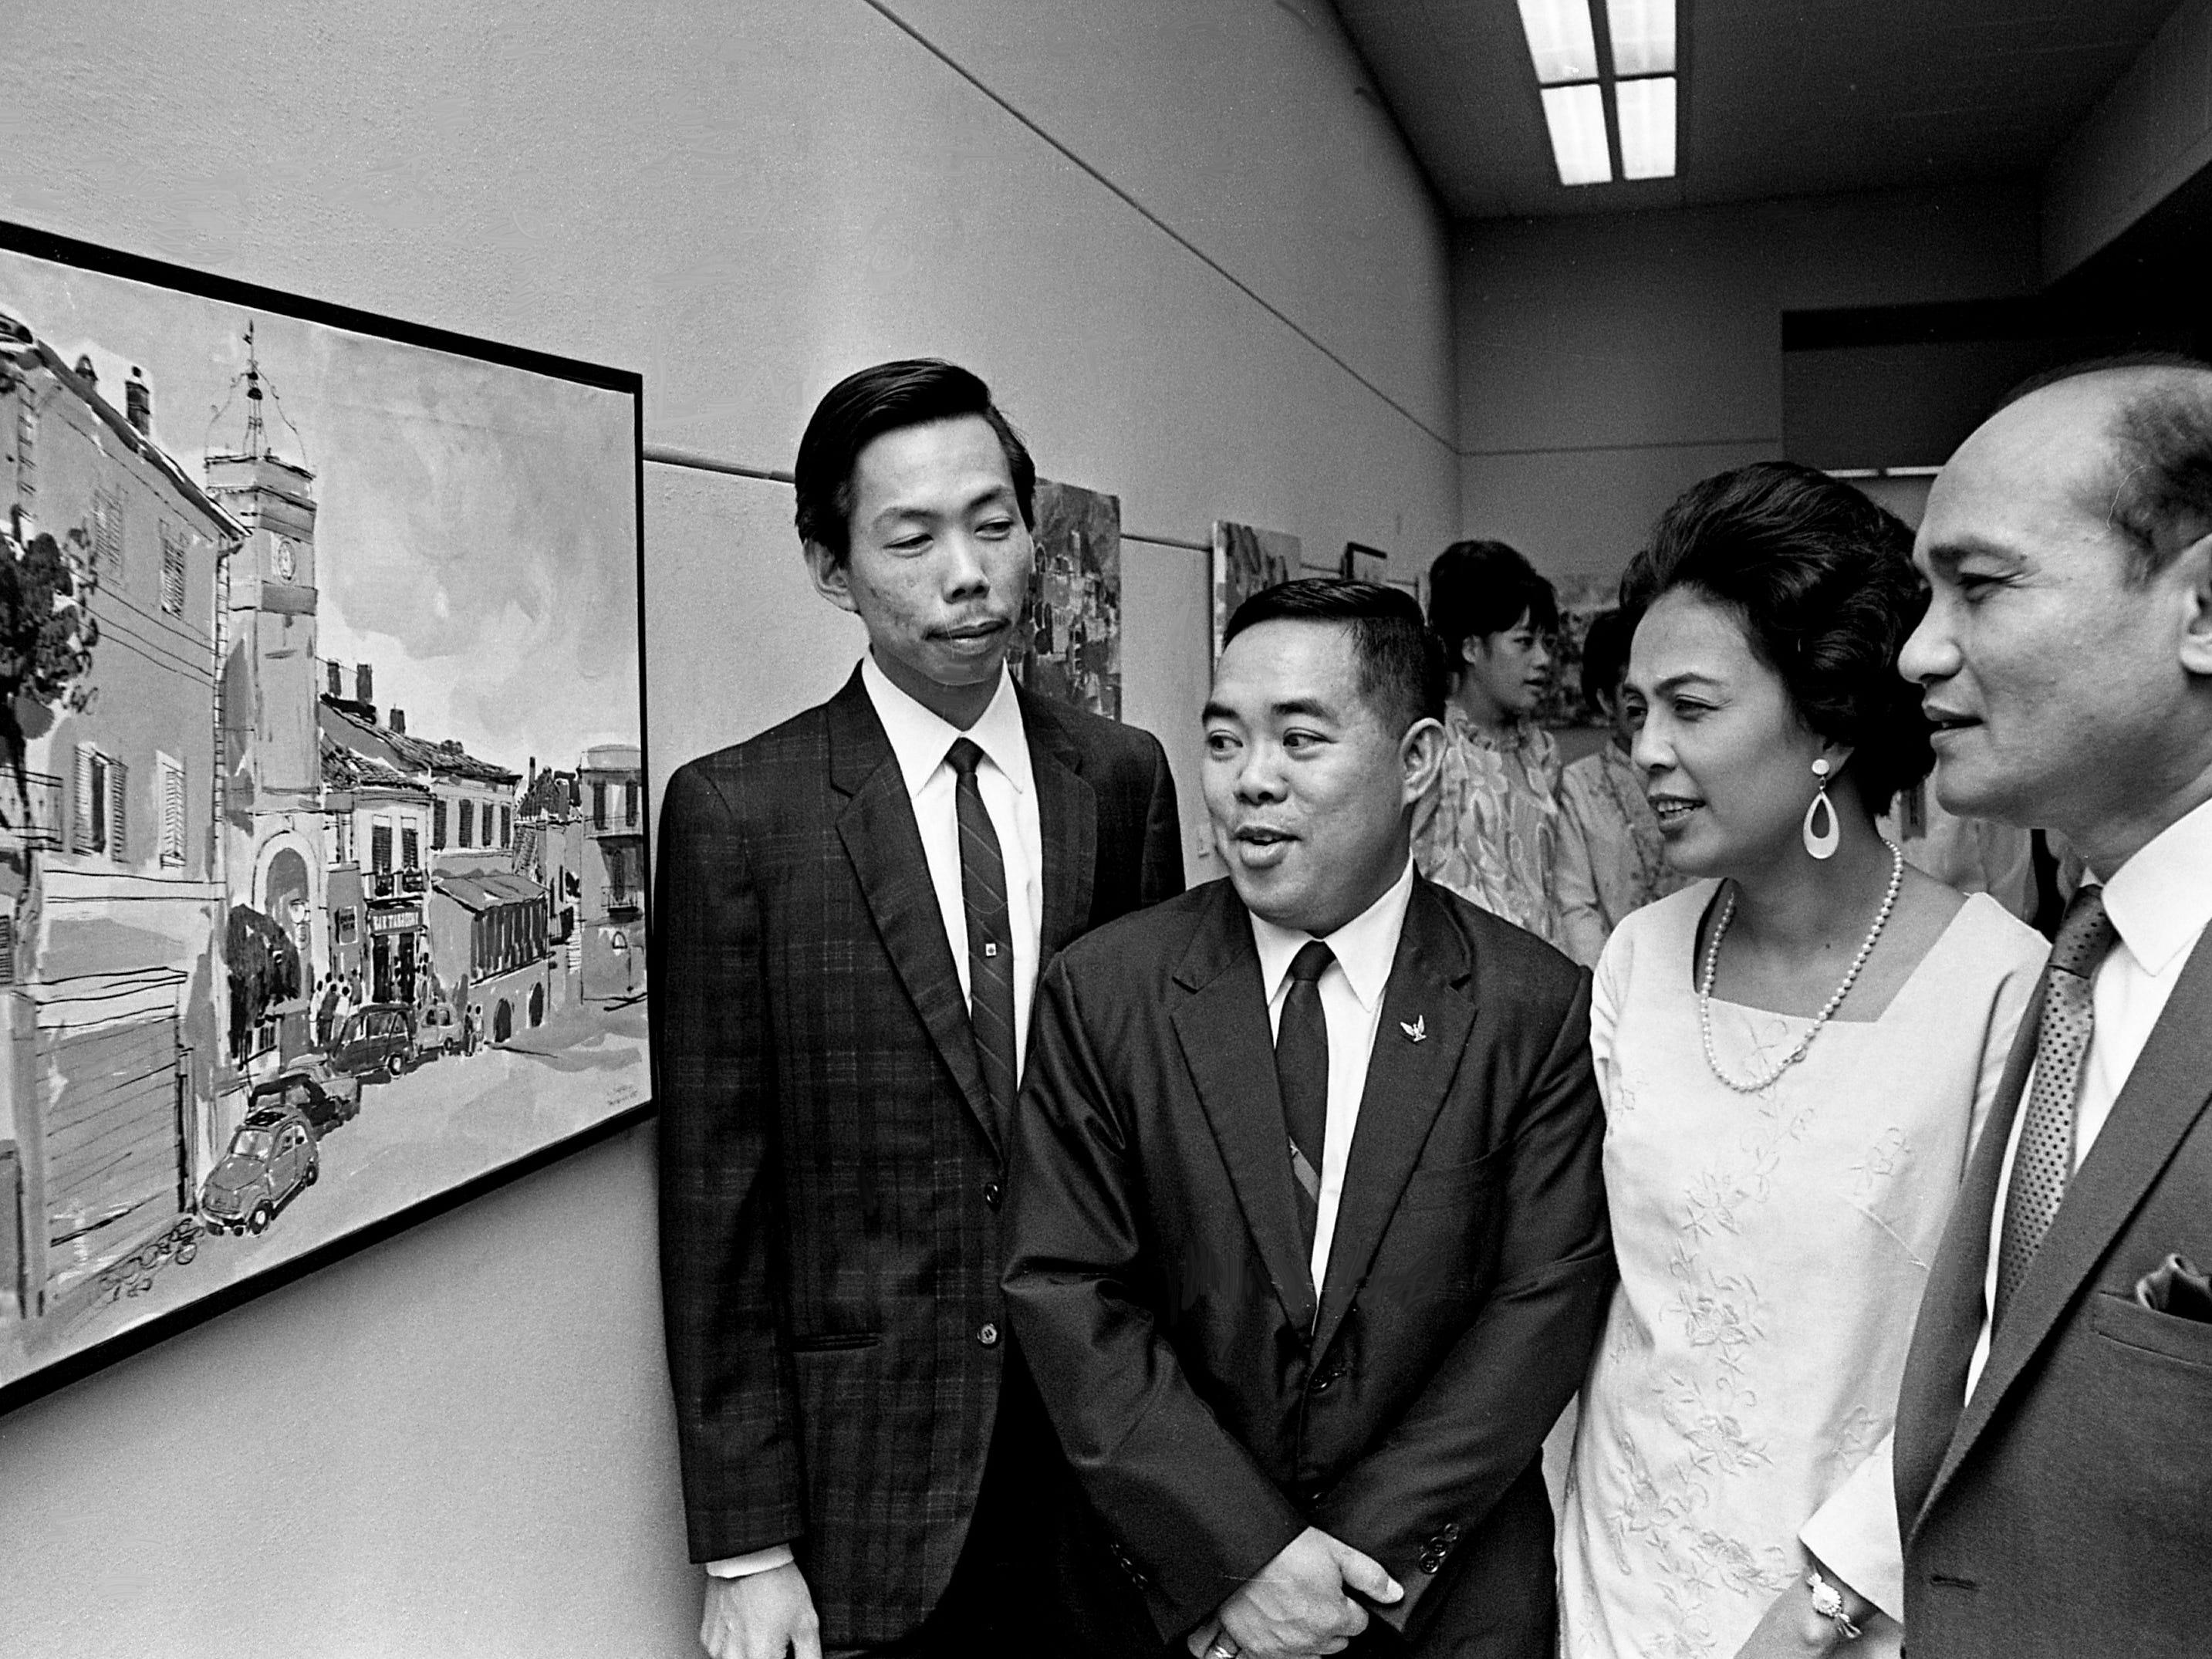 Salvador P. Lopez, right, ambassador from the Philippines to the United States, checks out one of the paintings at the two-man show of painter Lito David, left, and cartoonist Dani Aguila, second from left with his wife, during the opening reception at the Parthenon on Jan. 5, 1969.